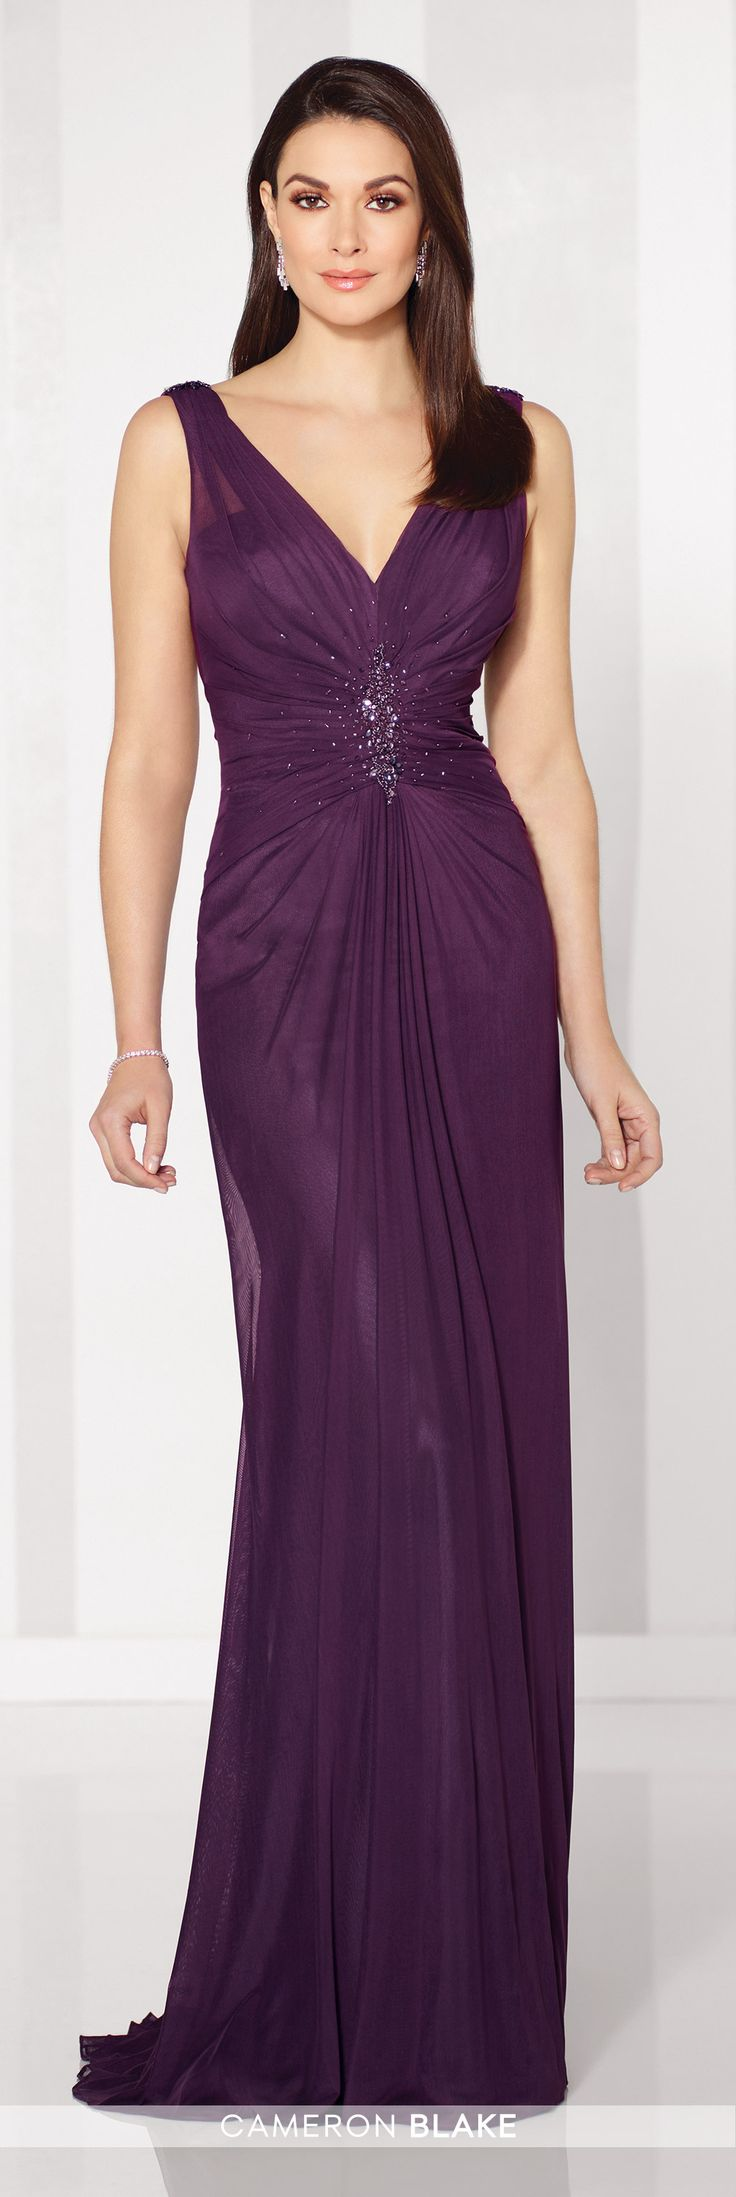 Cameron Blake - 216681 - Sleeveless stretch mesh slim A-line gown with V-neckline, center ruched bodice with hand-beading, cowl back, center gathered skirt. Matching shawl included.Sizes: 4 - 20Colors: Eggplant, Navy Blue, Smoke